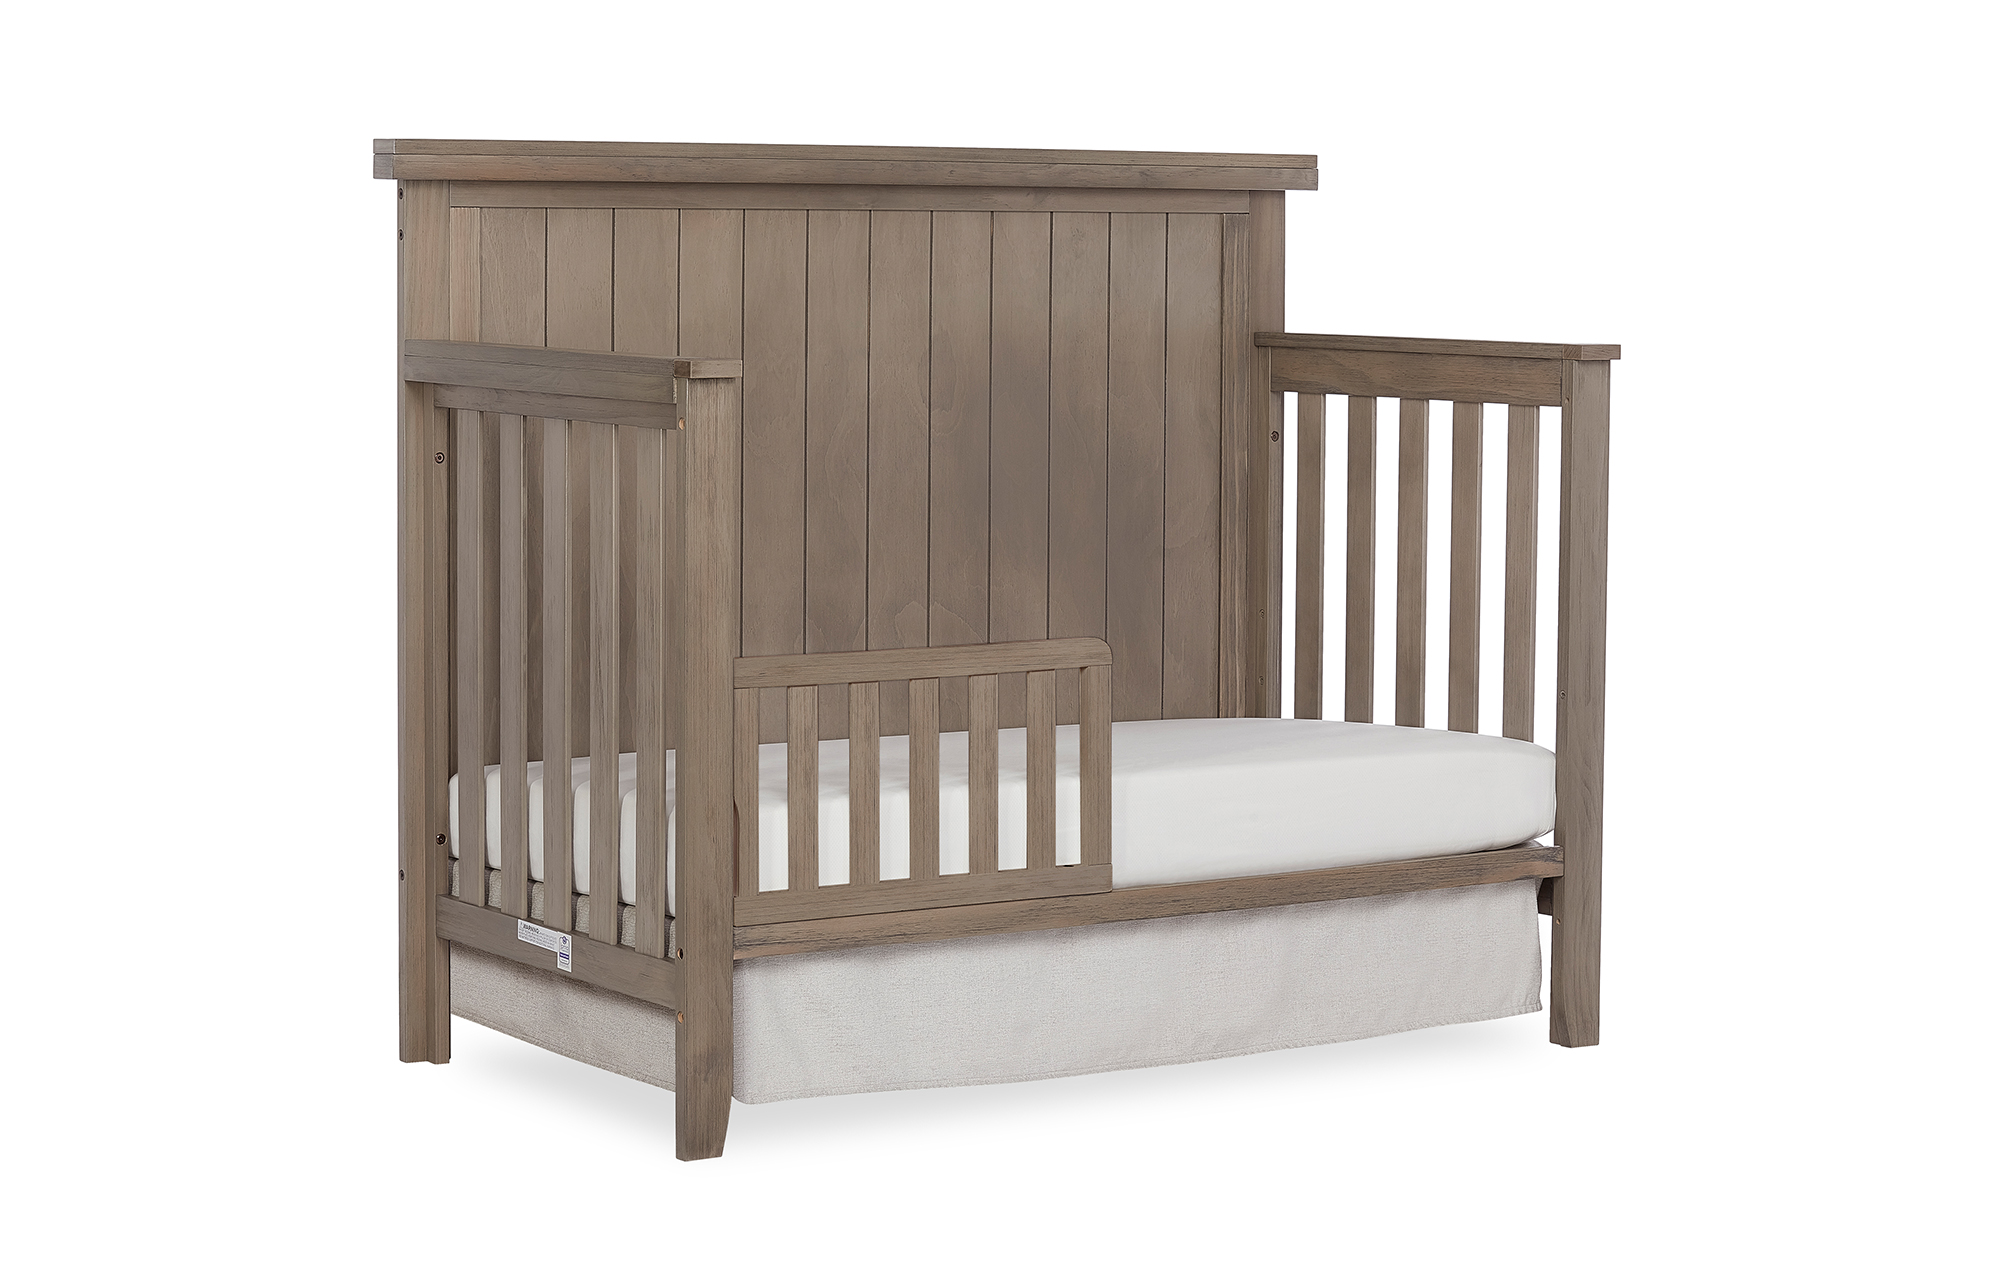 772BR-OAKGY Maple Toddler Bed